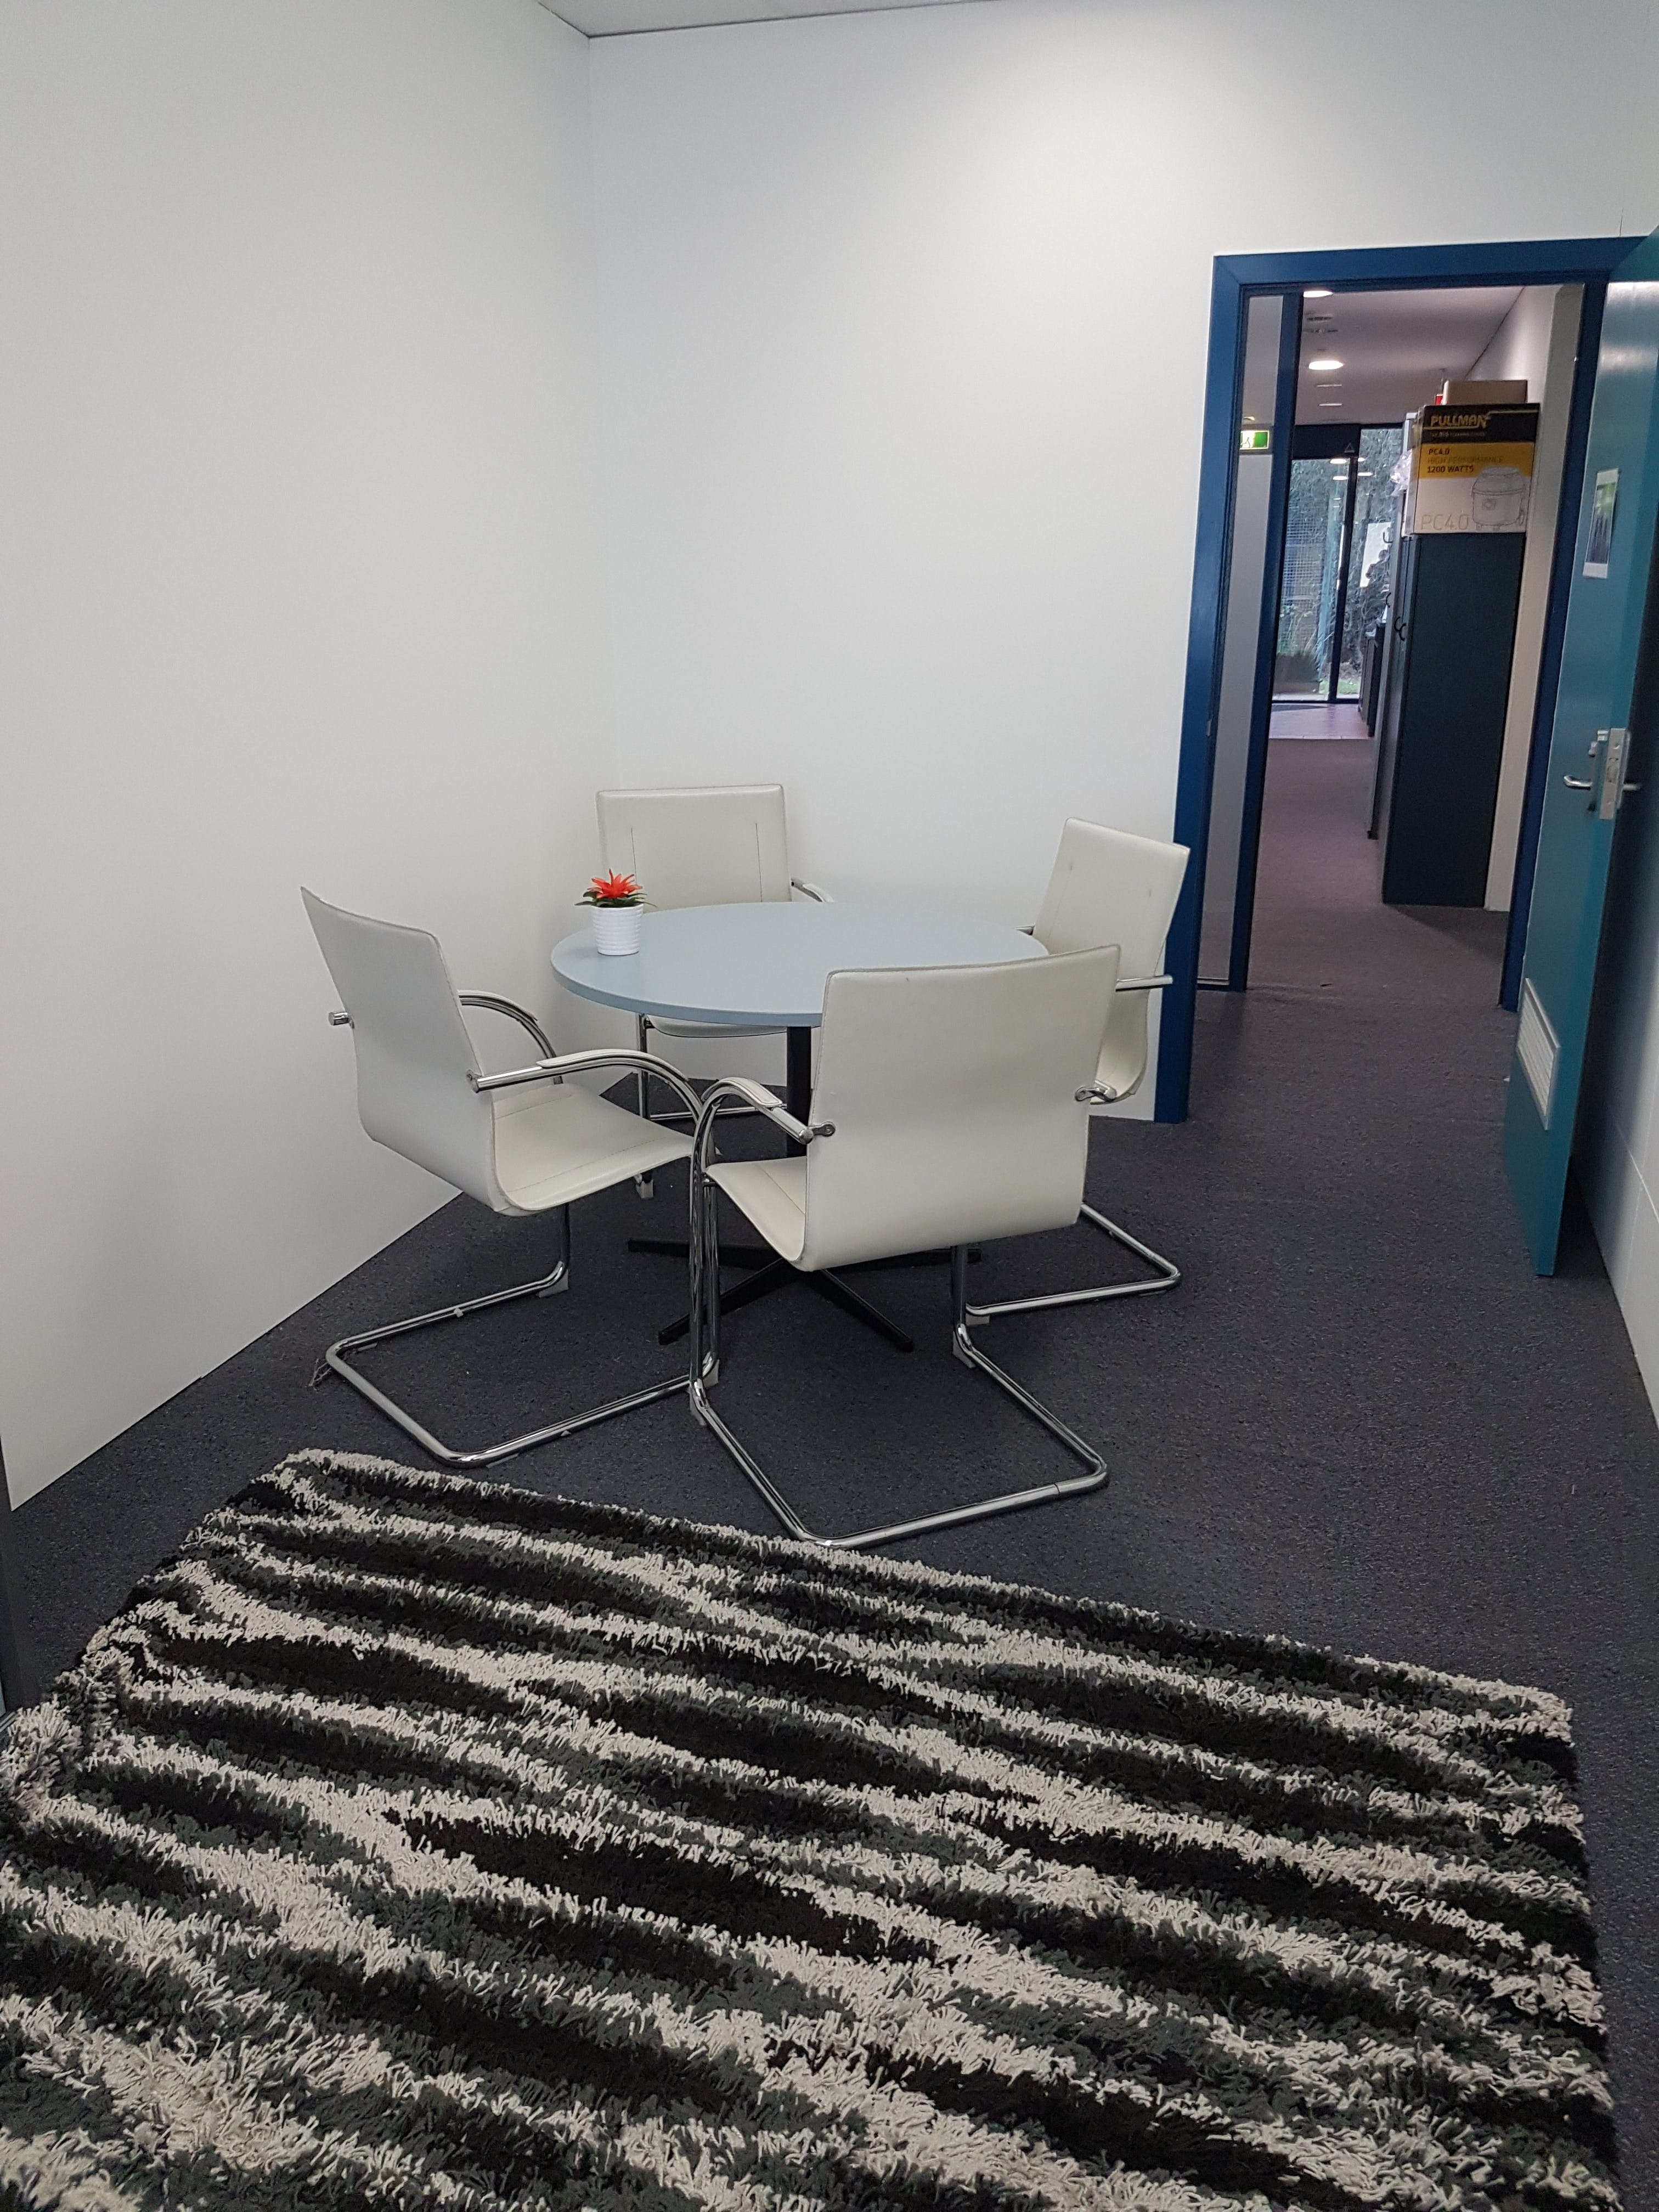 Wellness Room, meeting room at Eastern Innovation Business Centre, image 1